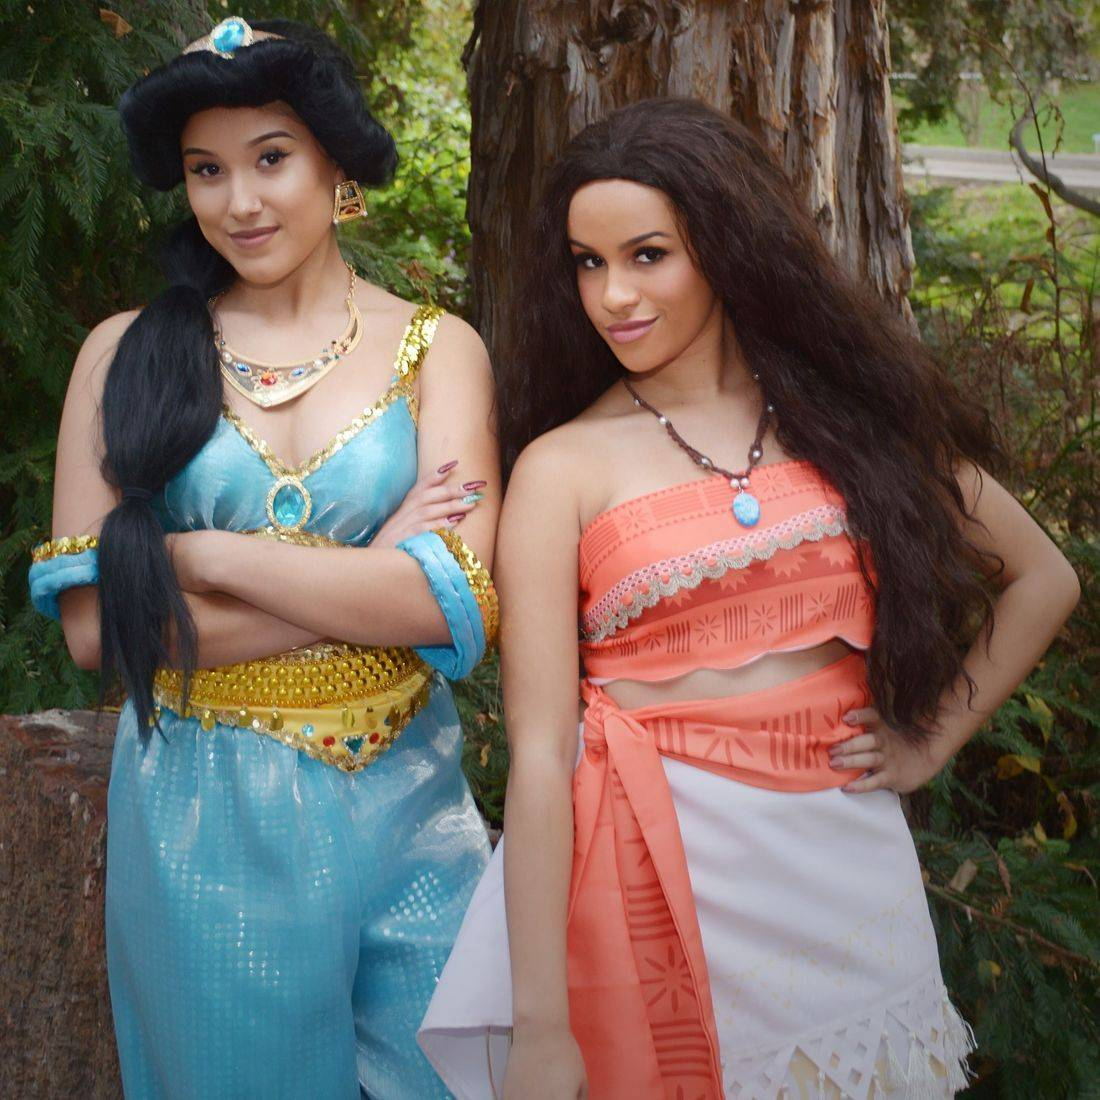 jasmine,jasmine party,aladdin party,birthday party, riverside,character,princess party, kid's party entertainment